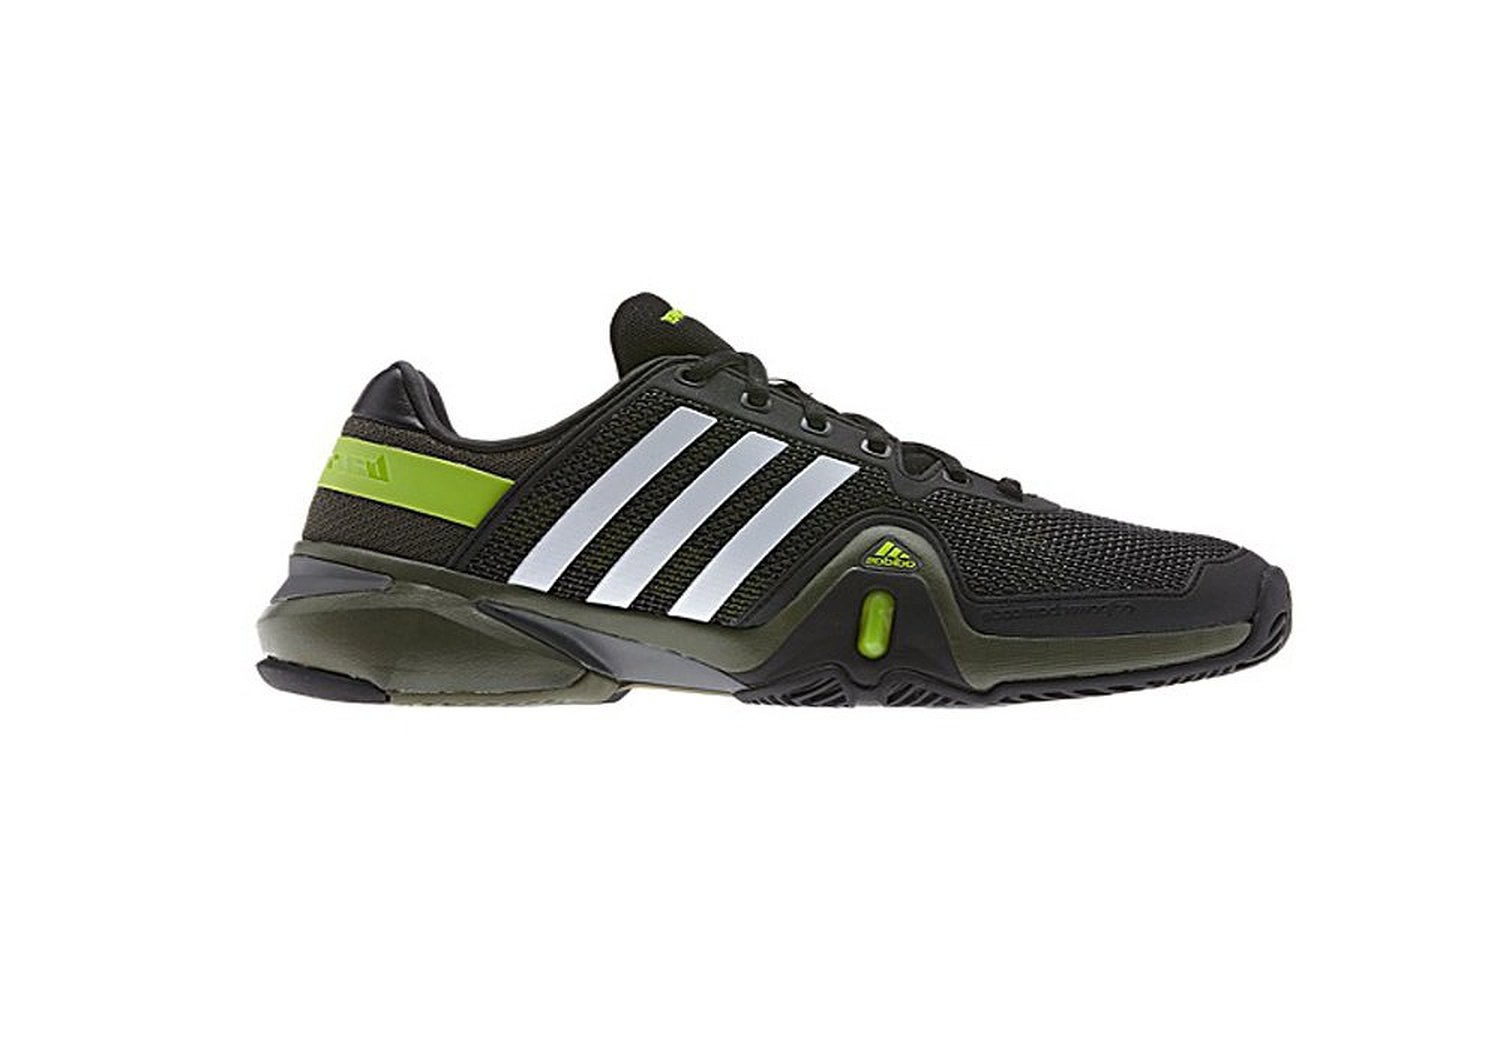 new concept a44e3 611c3 Get Quotations · Adipower Barricade 8 (blkwhtgrn) - mens size 9.5